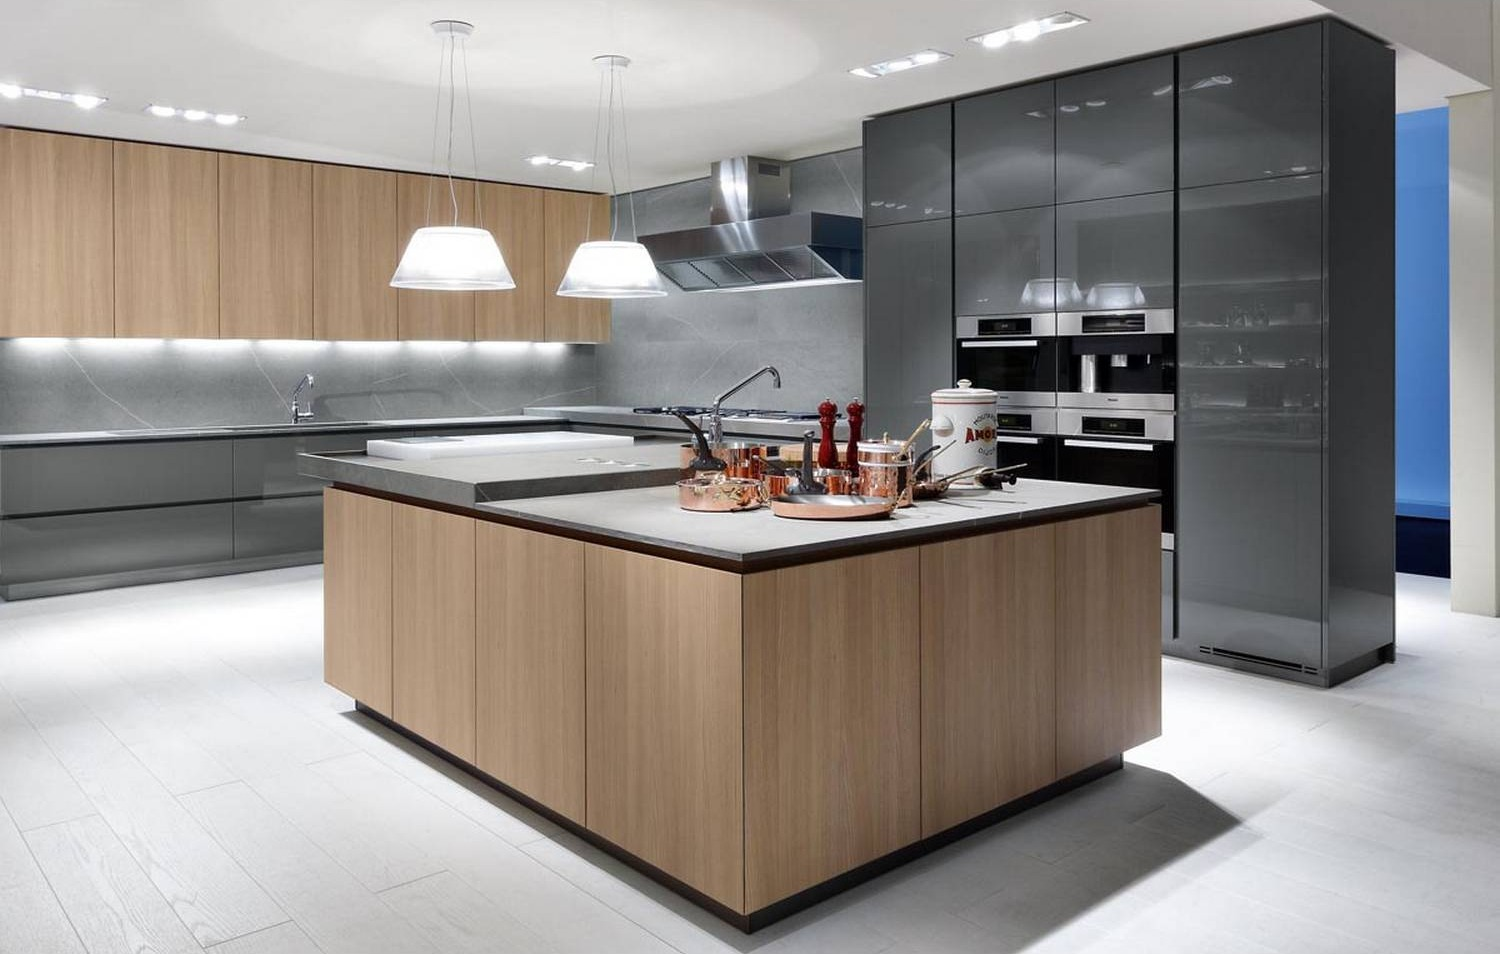 Kitchen Building- Important Tips to Know